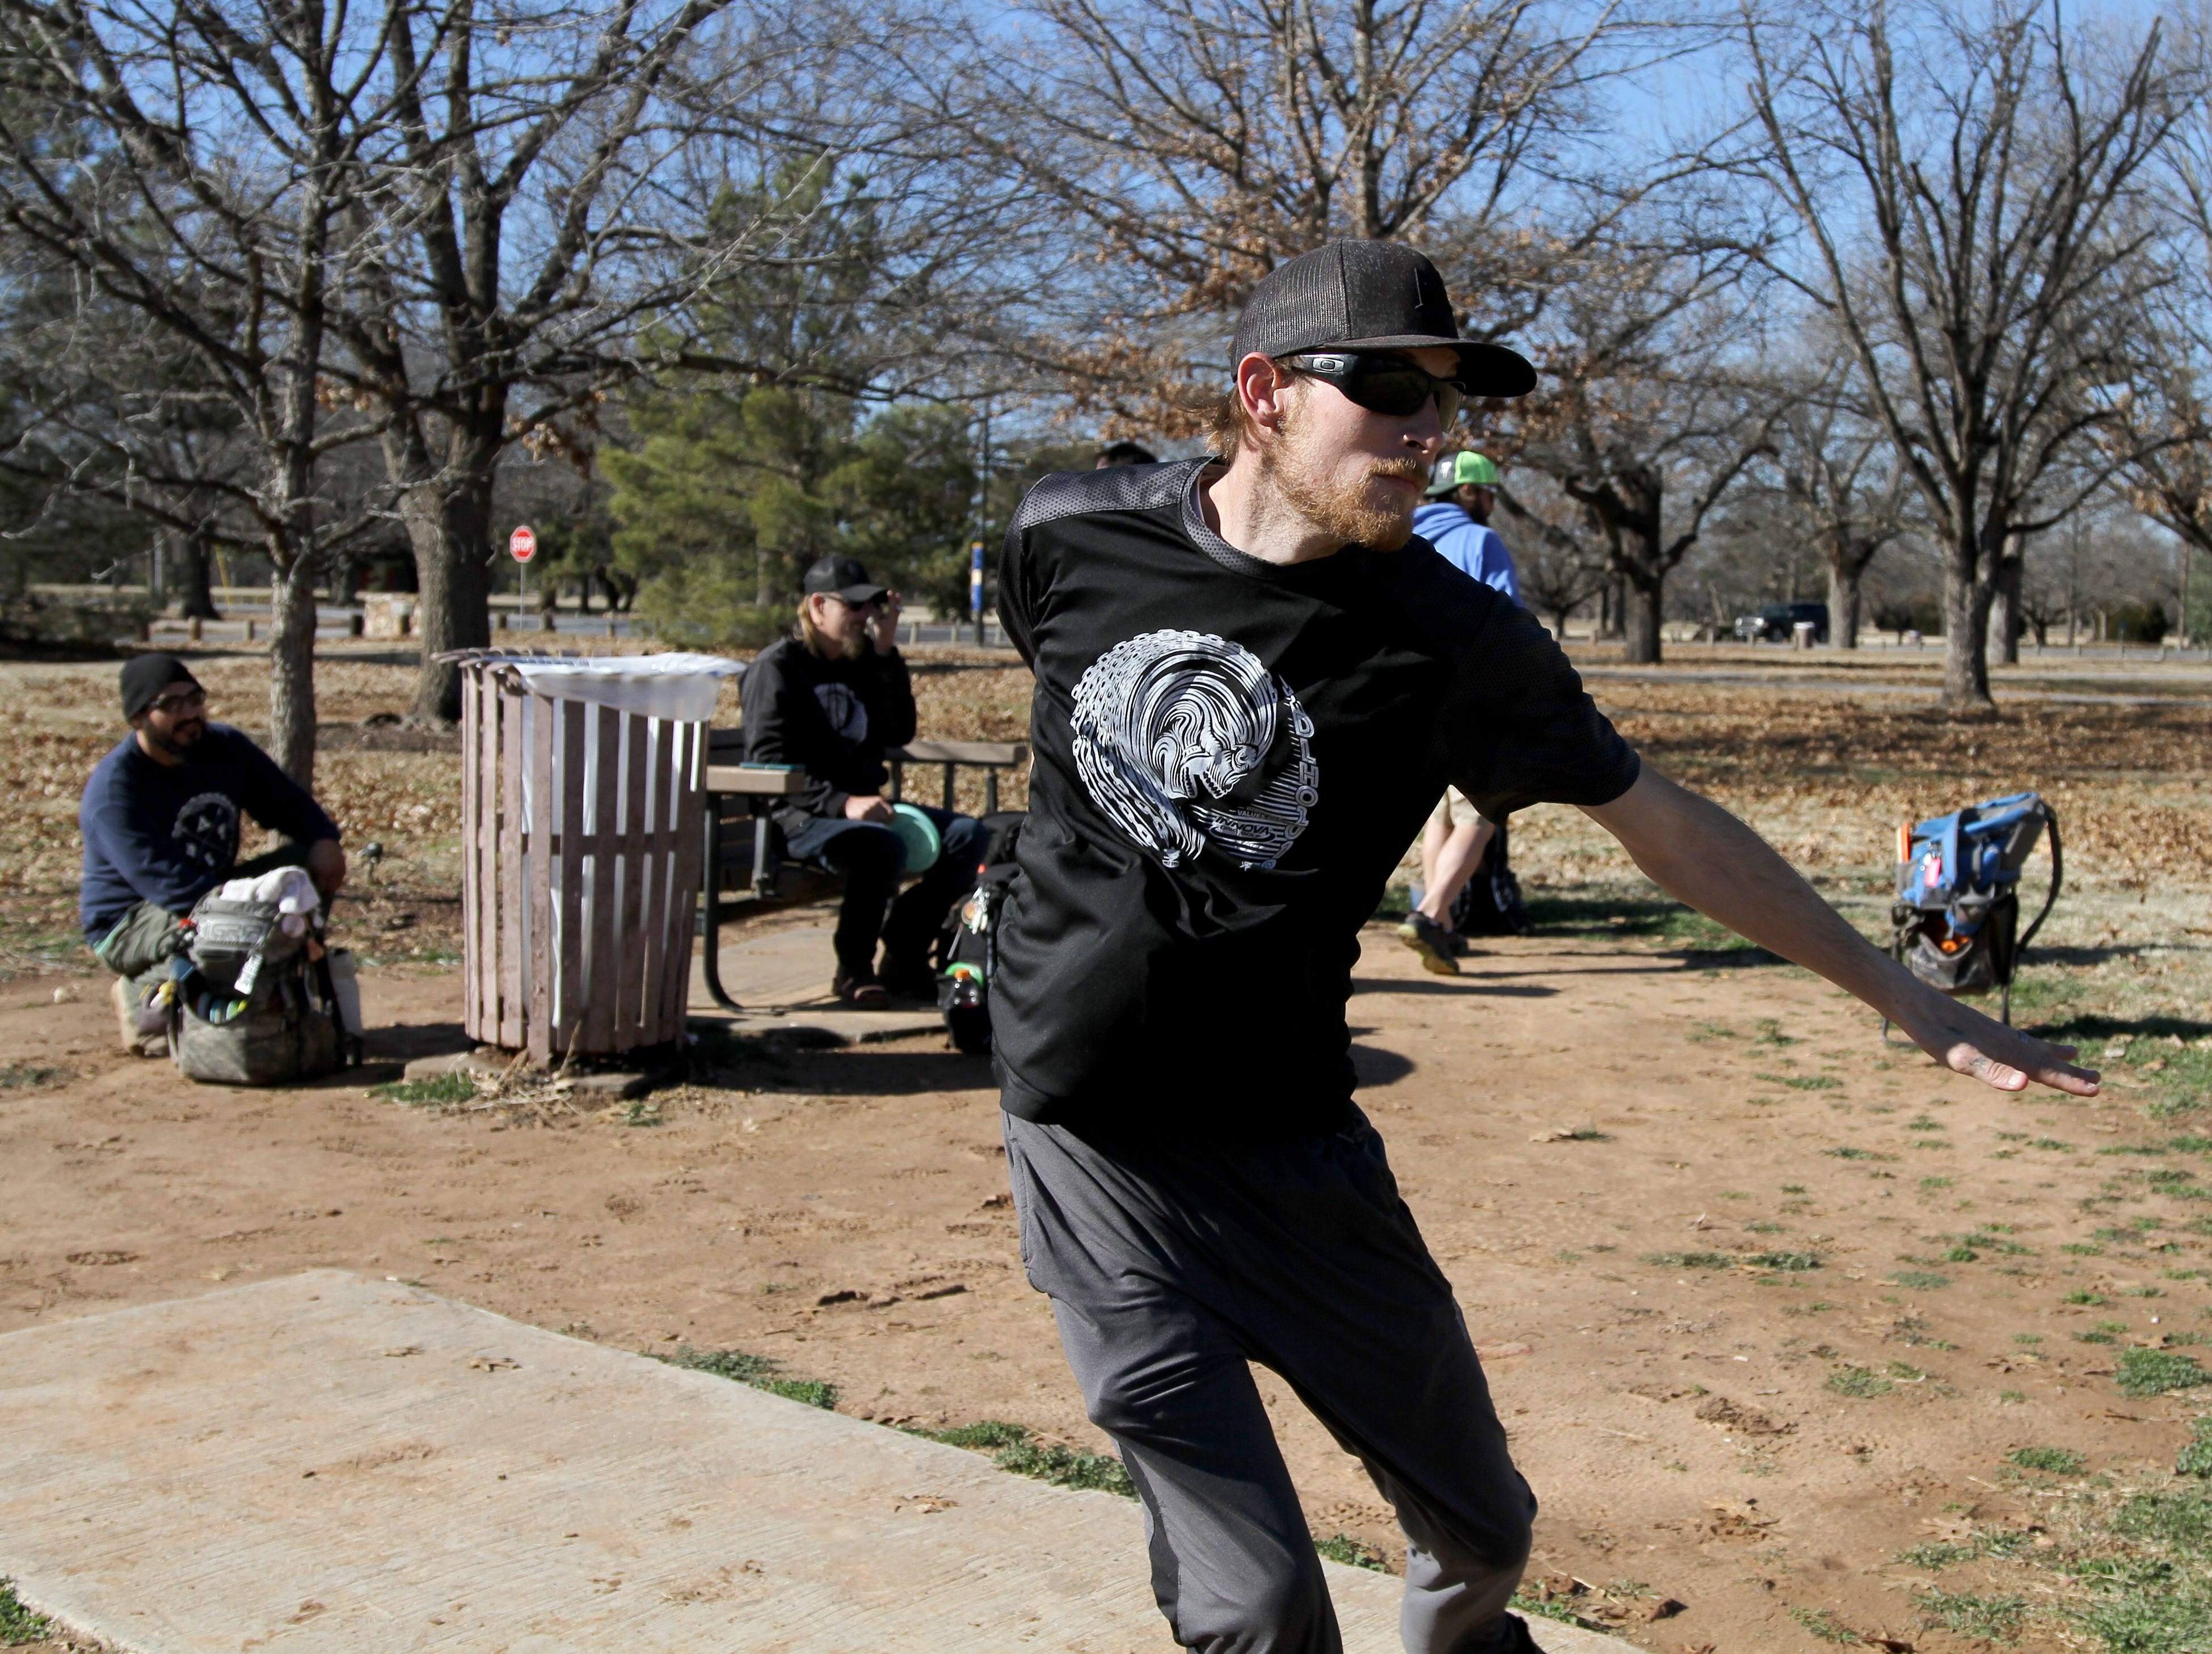 JD Cmompton watches his throw while playing disc golf with friends Saturday, Jan. 5, 2019, in Lucy Park.